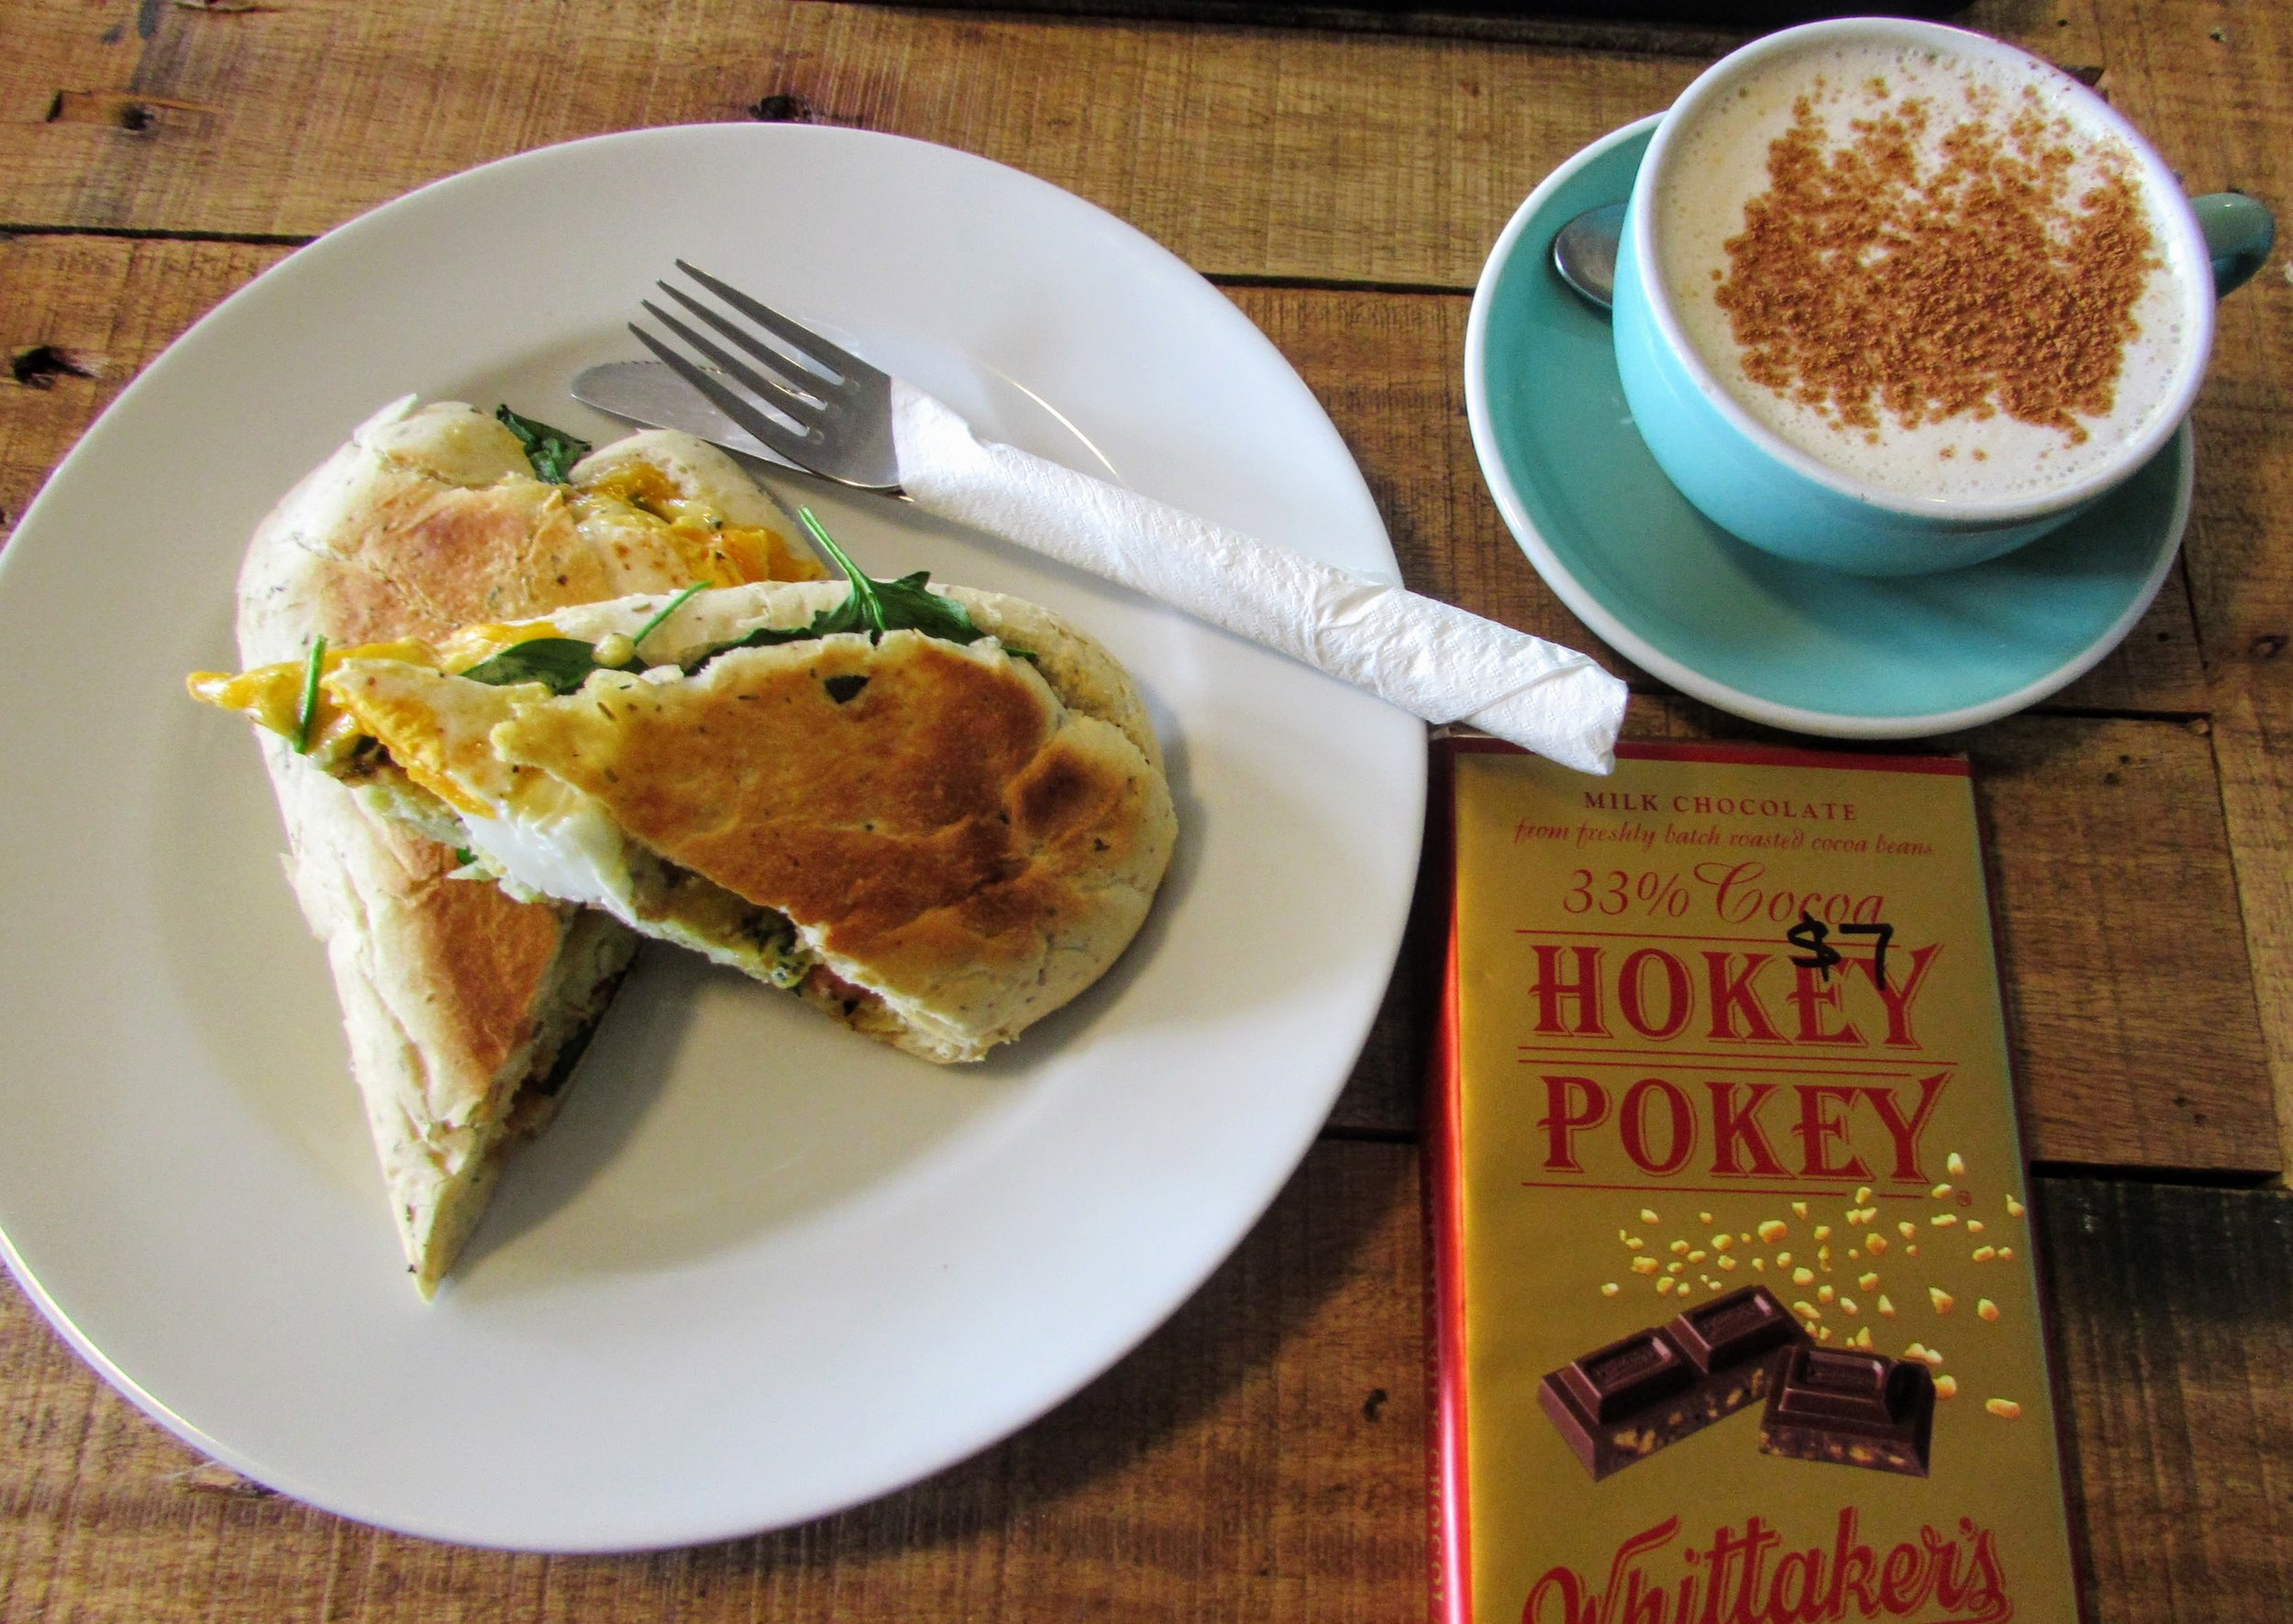 We had brunch in Waitomo at a little cafe/convenience store and split this whole hokey pokey bar for dessert.